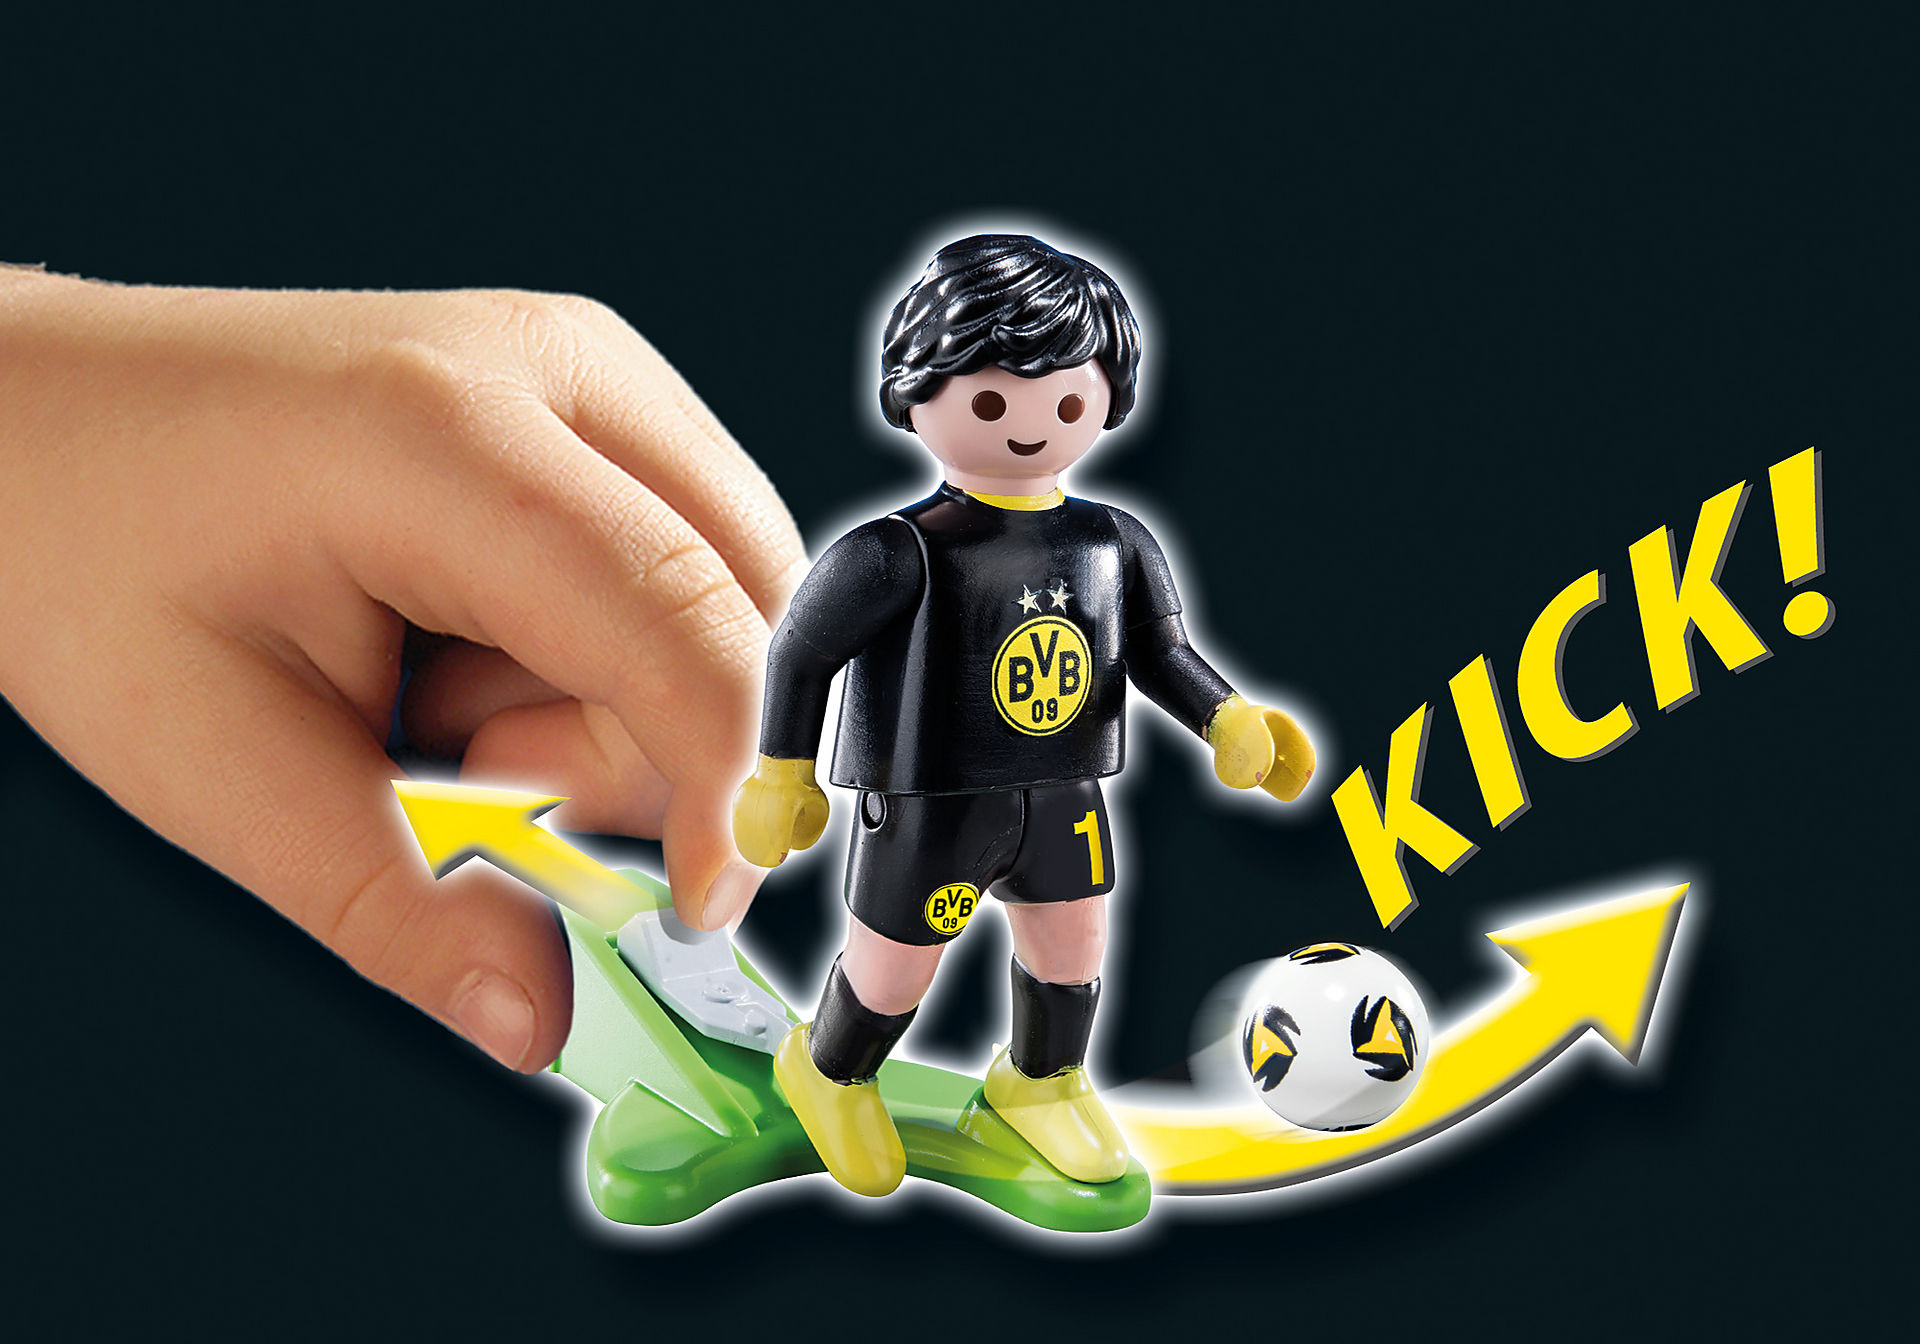 70547 Promo BVB-Keeper zoom image4